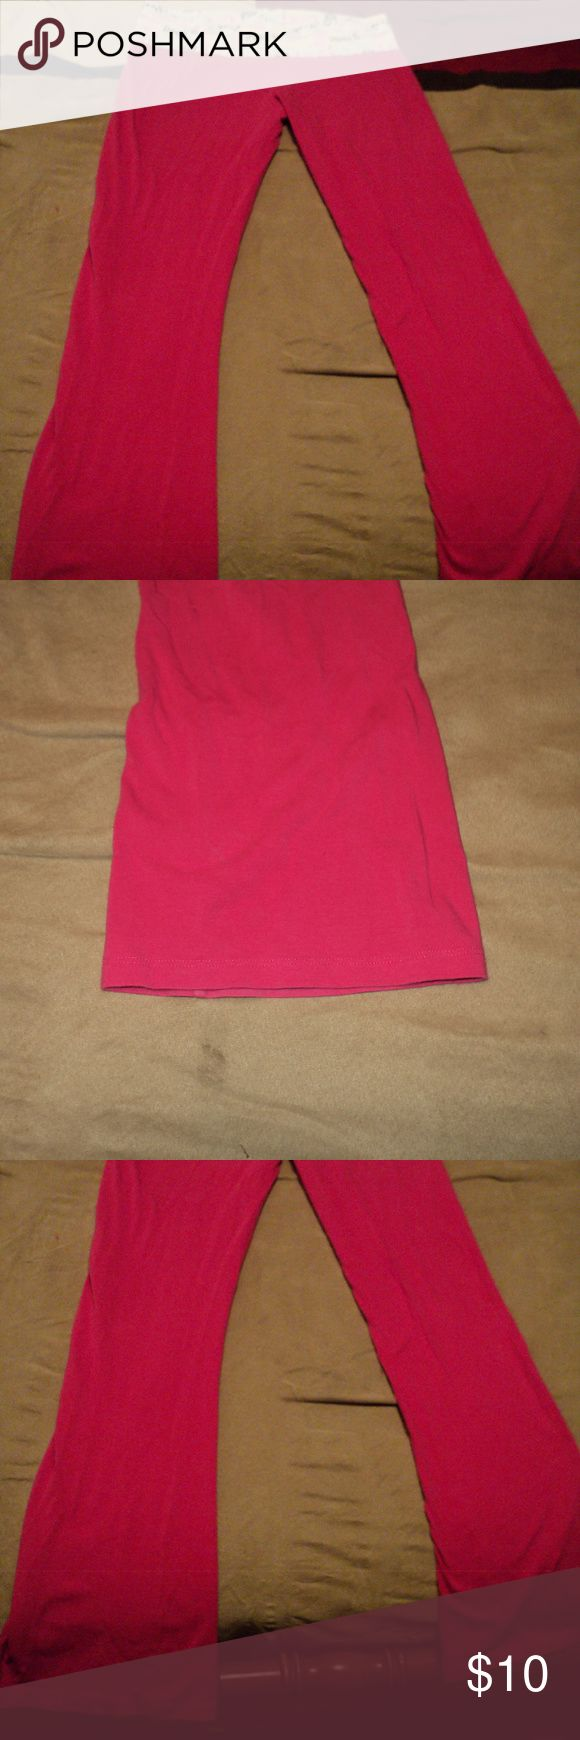 Pink yoga pants Pink yoga pants that have cute words on top. Size large. Any questions please feel free to ask! No brand Pants Boot Cut & Flare